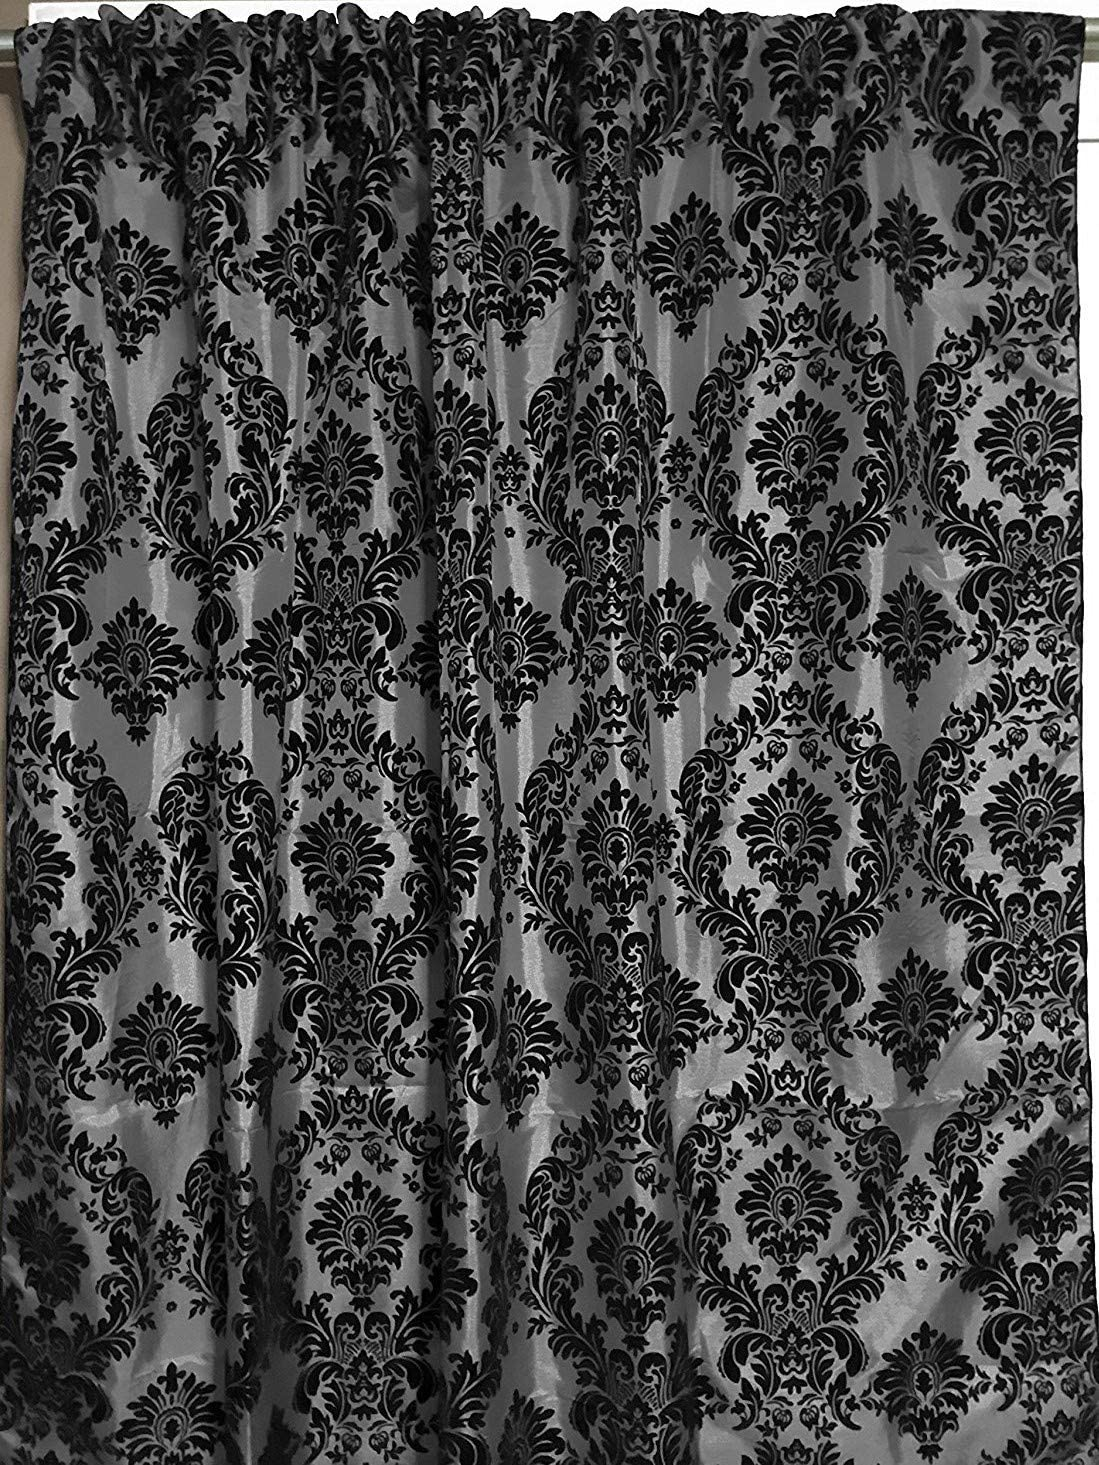 lovemyfabric Taffeta Flocking Damask Print Window Curtain Panel Stage Backdrop Photography Backdrop-Black on Silver 2, 56 X120